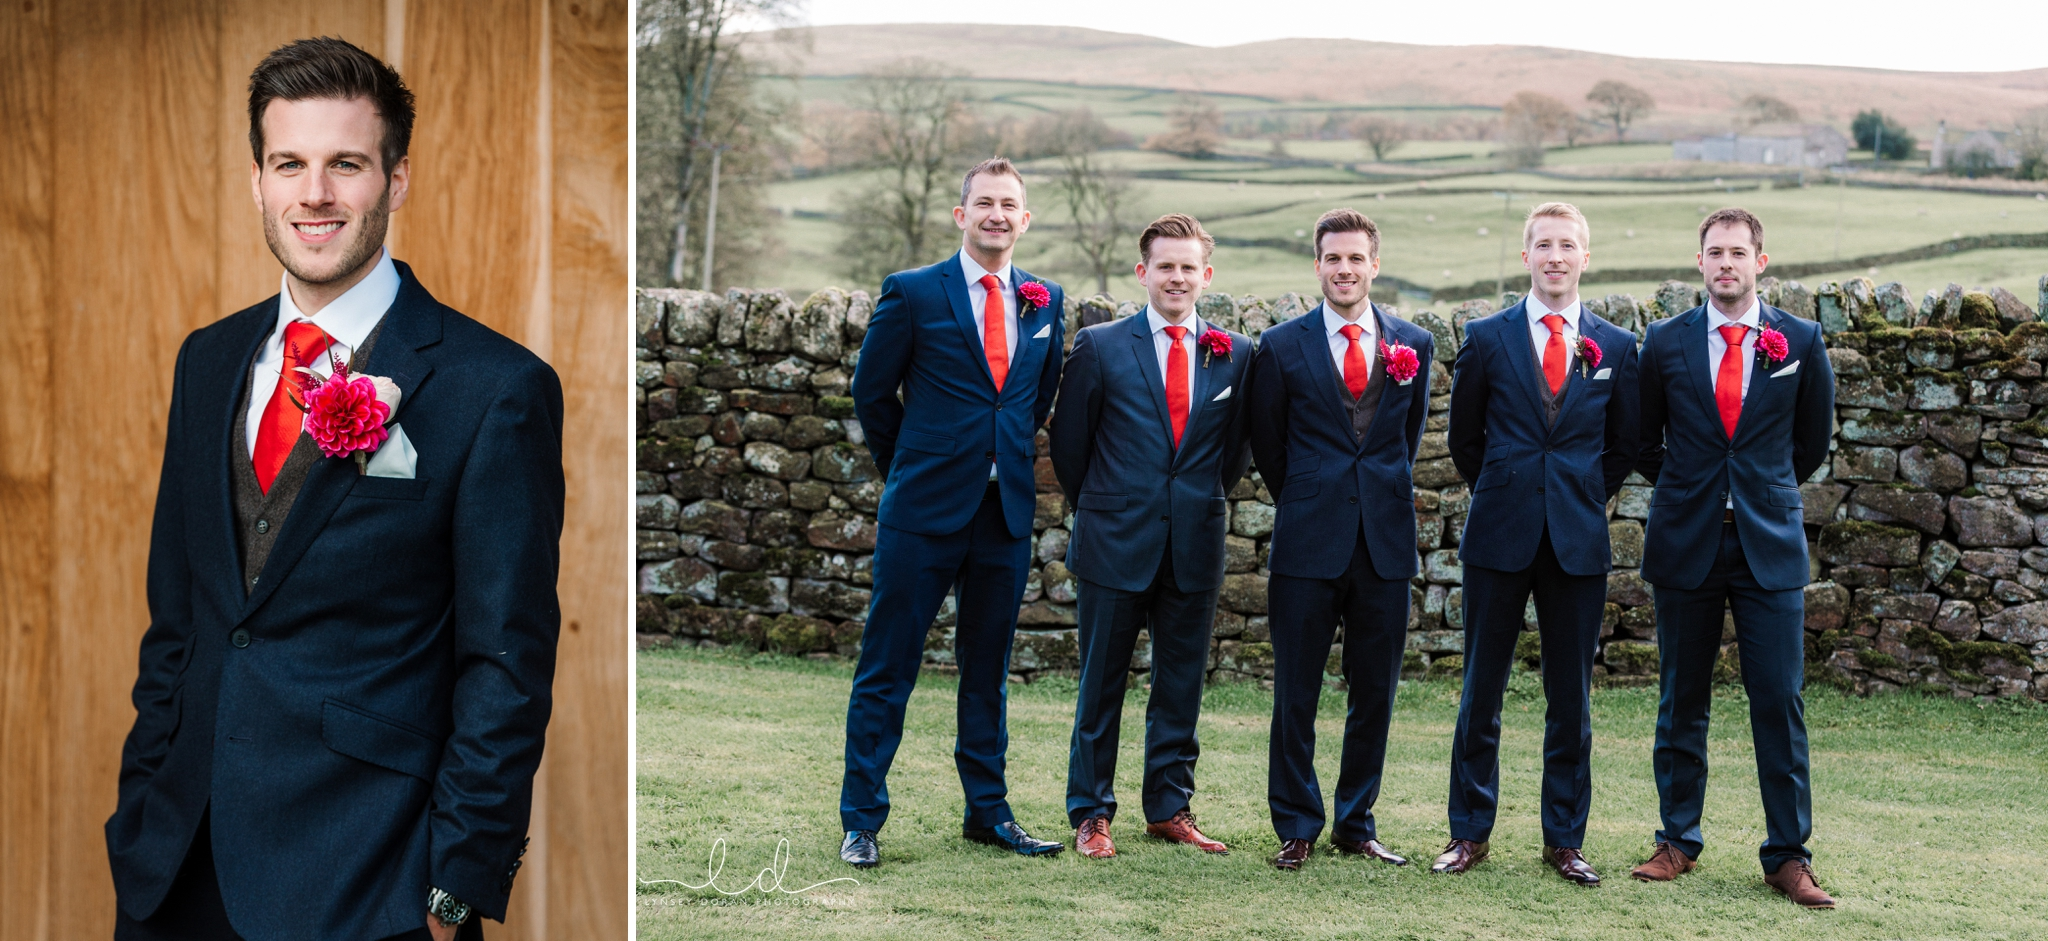 Rustic Wedding Photographers Yorkshire | Barden Towers Wedding Photos_0014